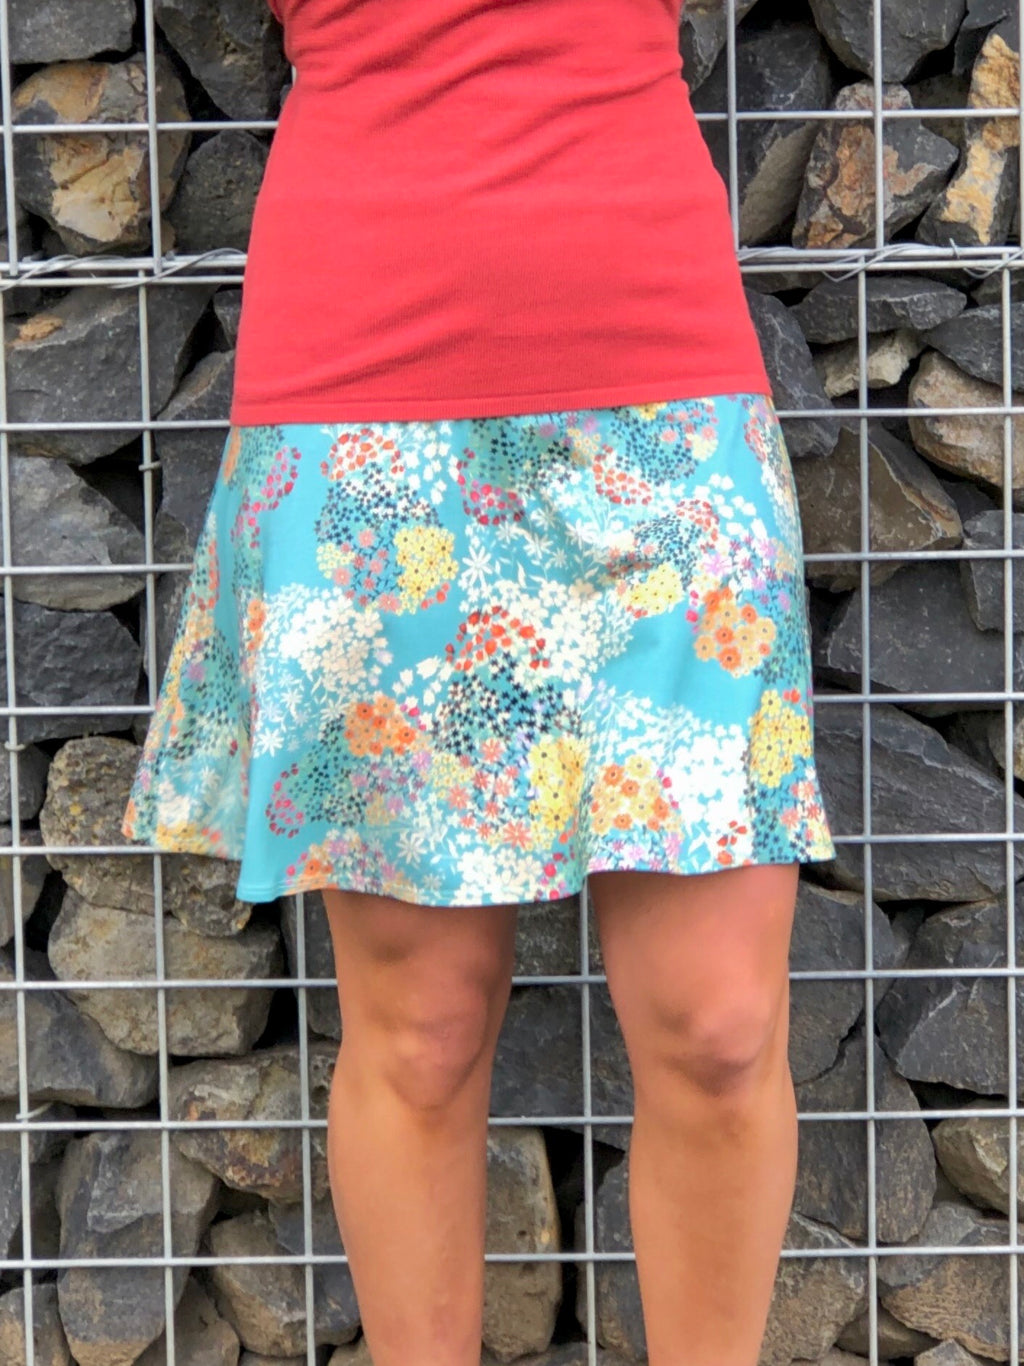 Flippy Skirt KS122